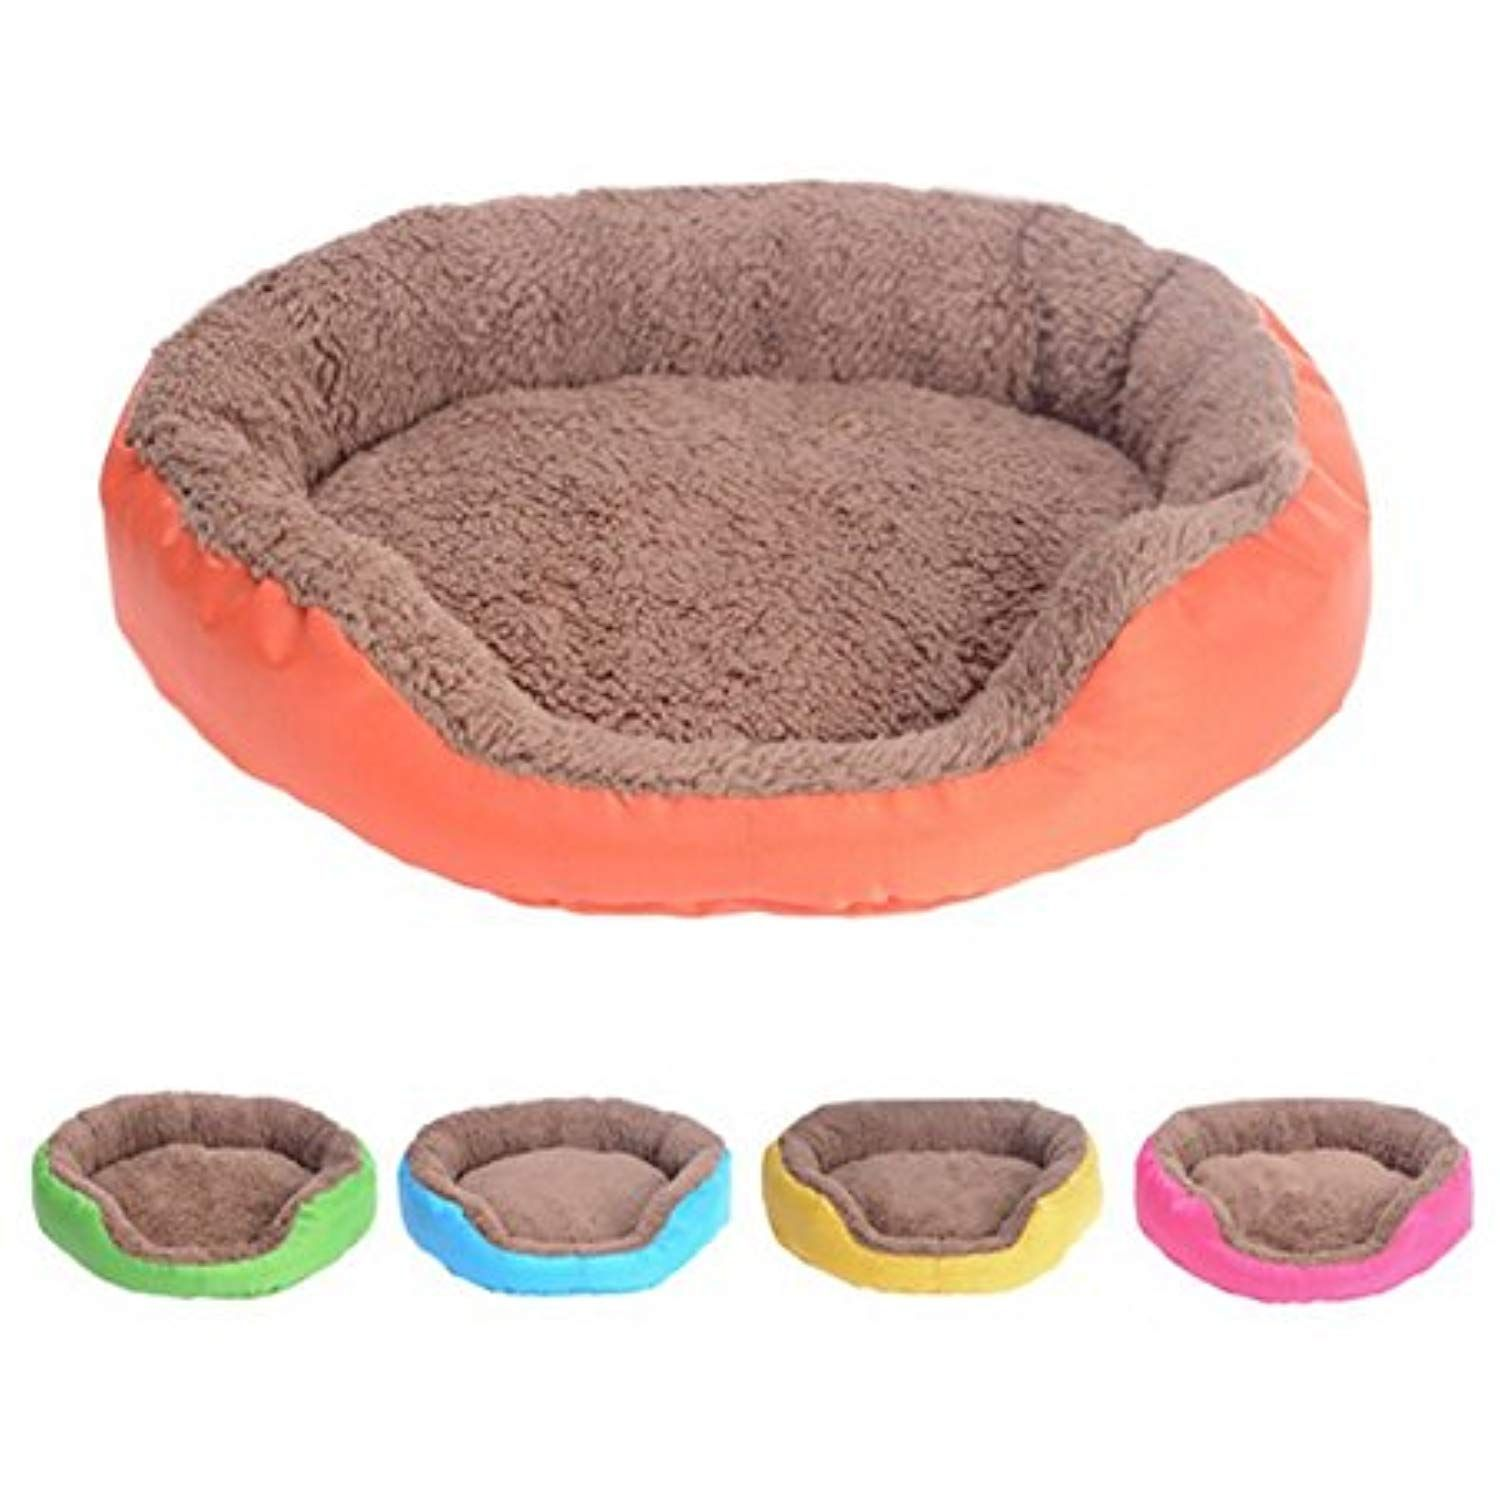 Washable Puppy Pet Dog Cats Dog Pet Beds Dog Beds For Small